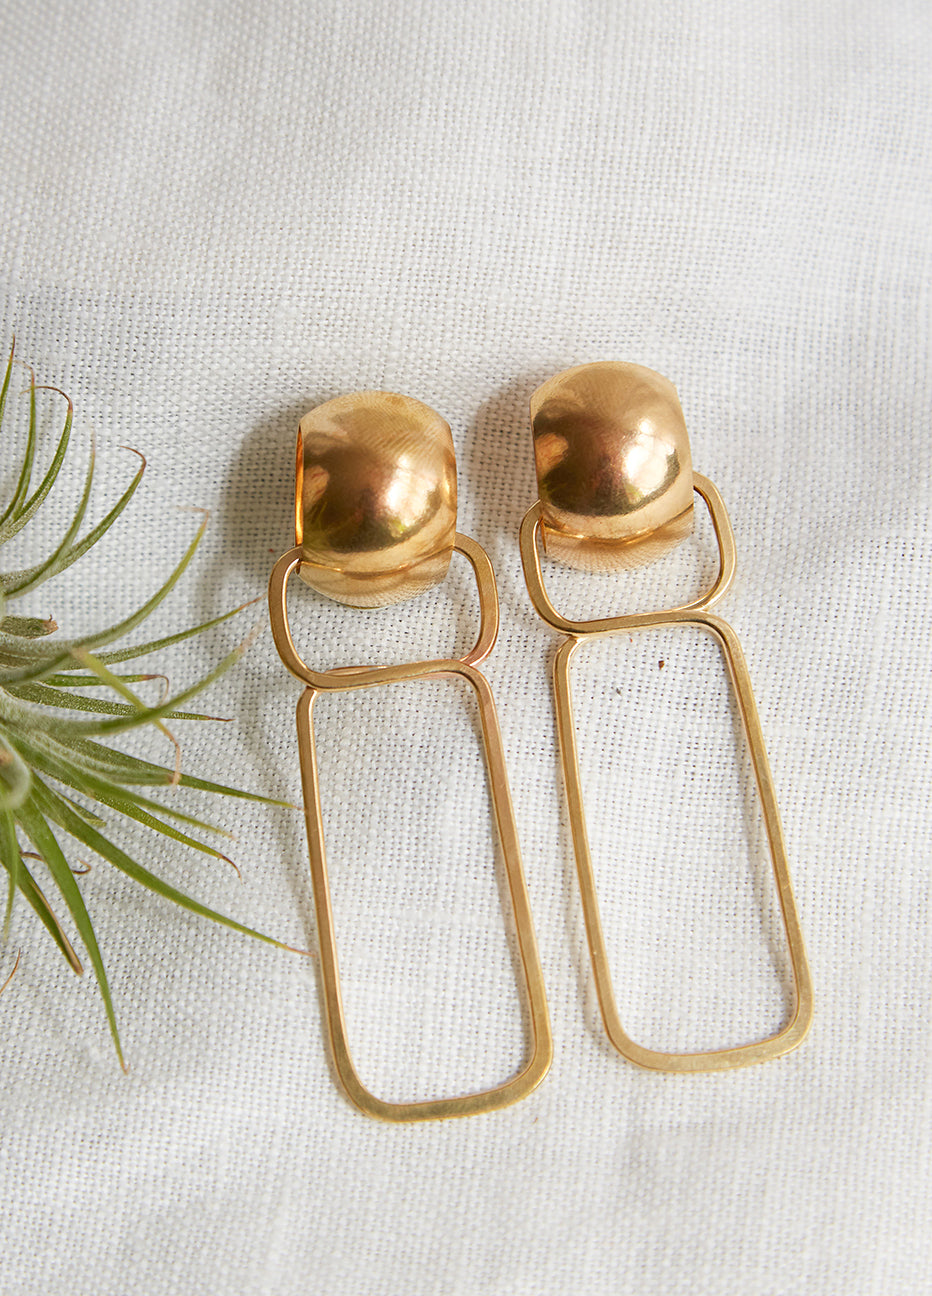 Lila Rice Allegra Earrings